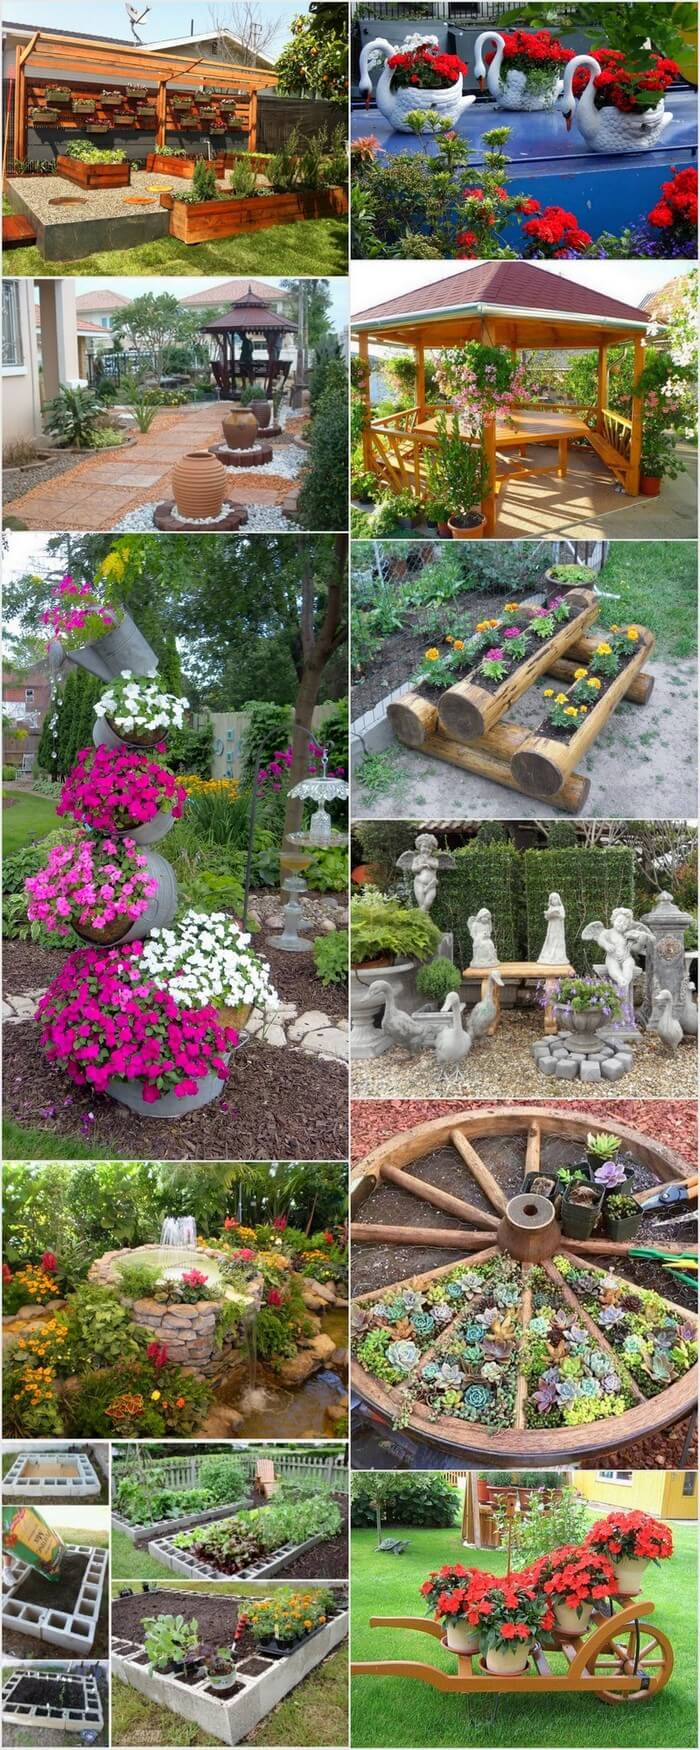 Pretty wonderful diy garden decor ideas recycled things - Diy garden decoration ideas ...